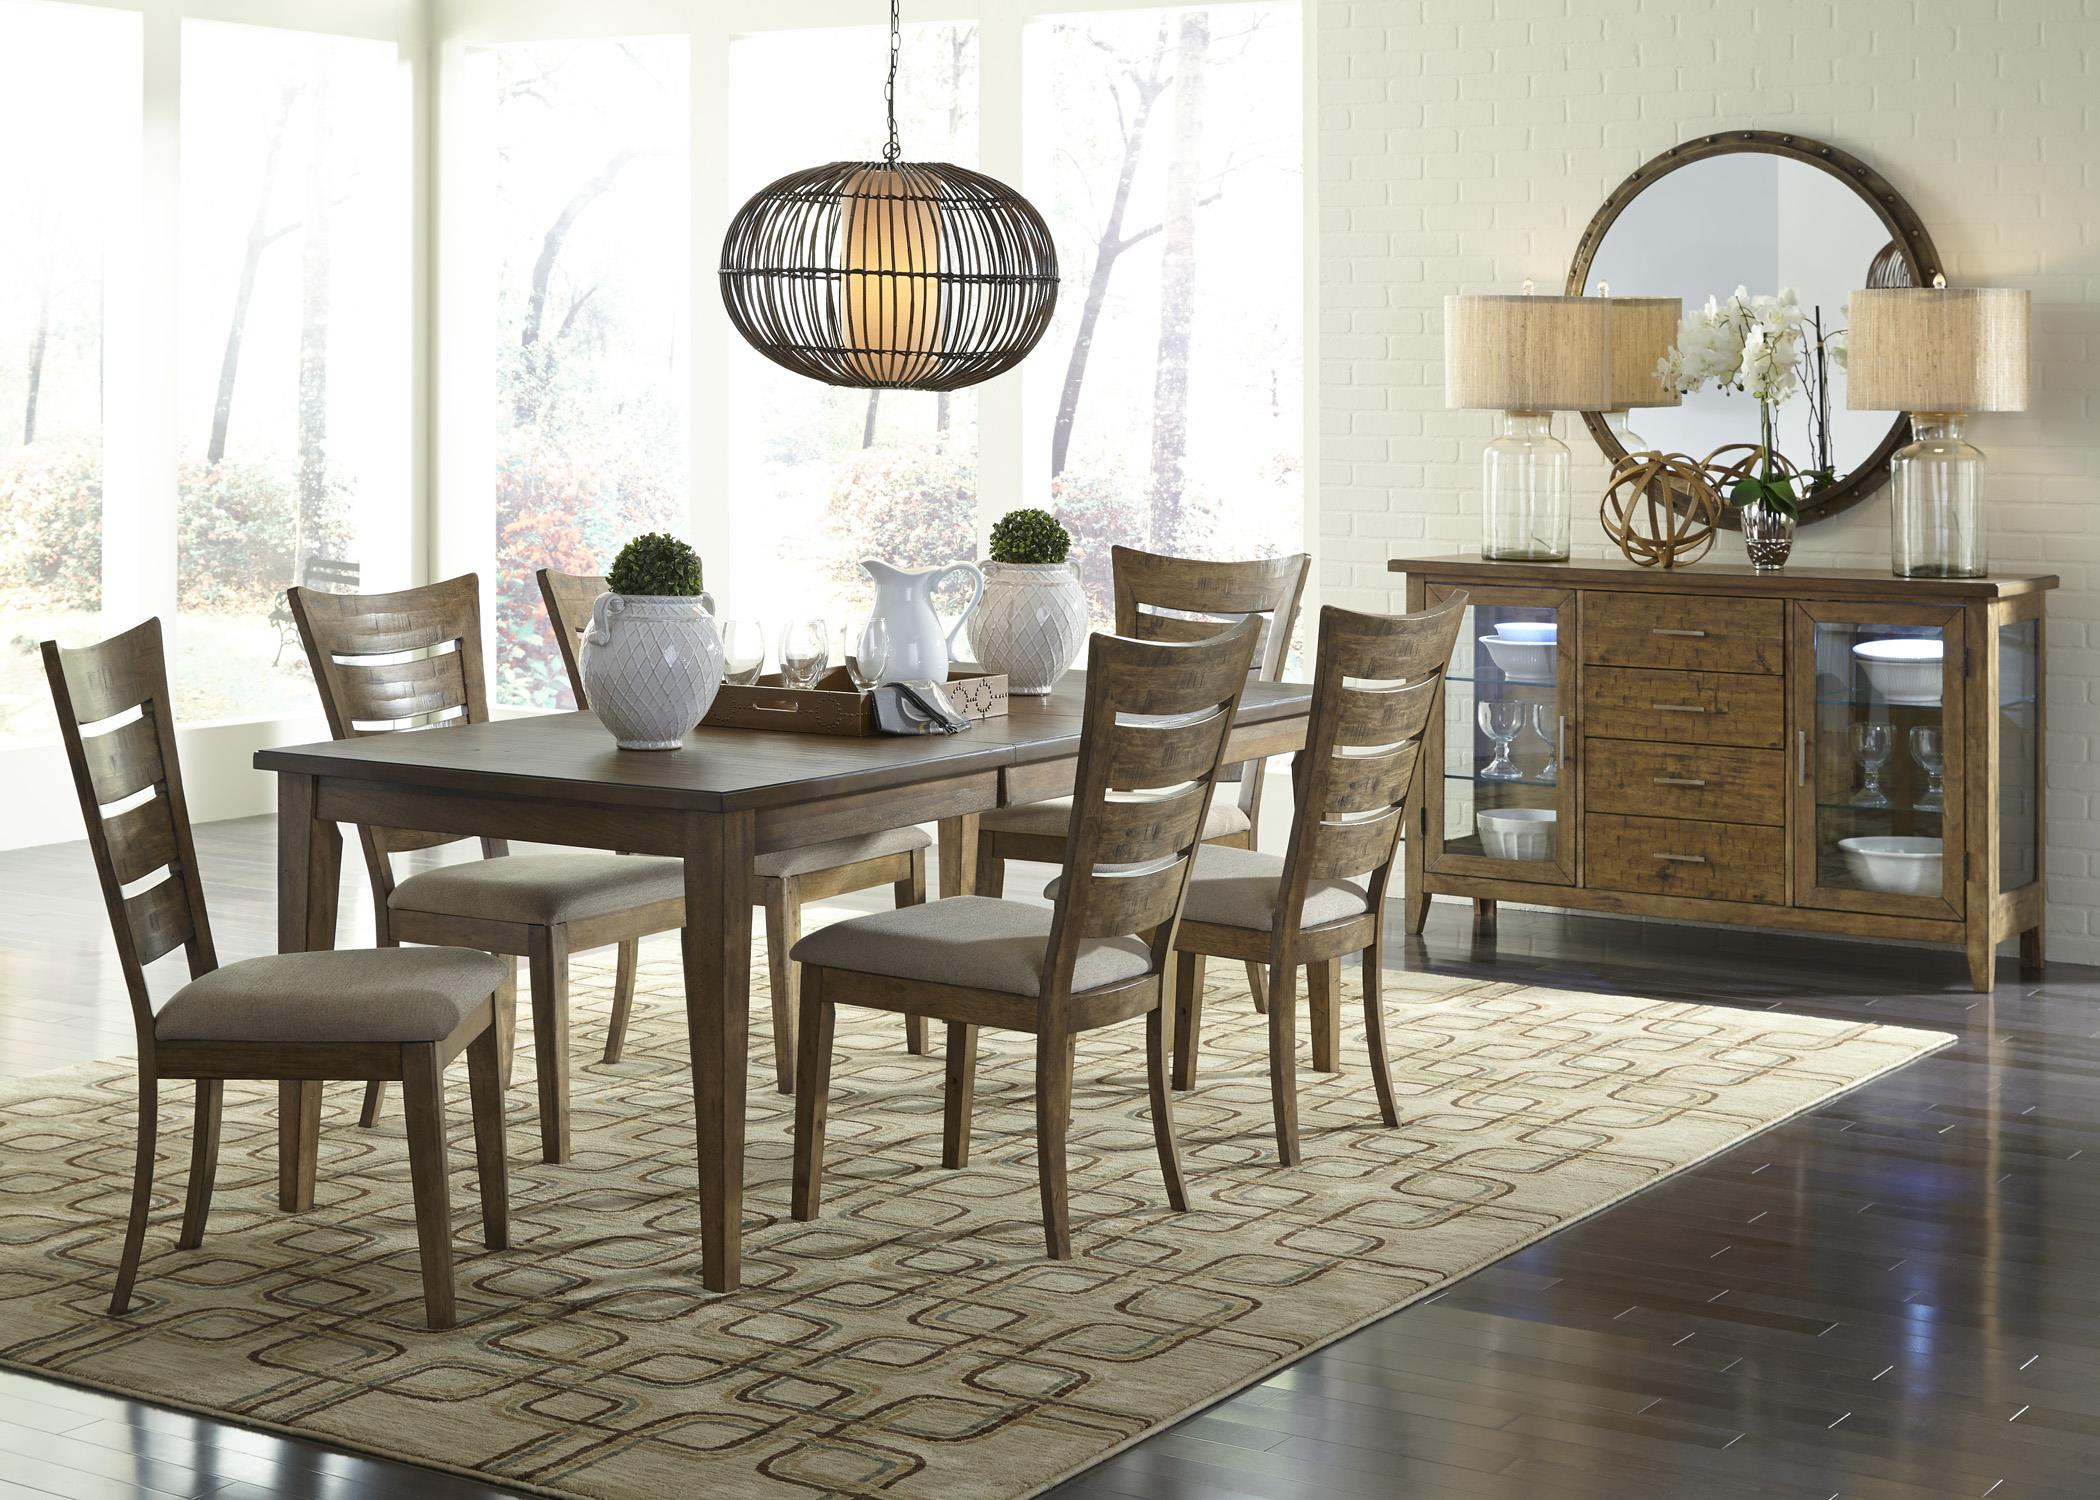 Vendor 5349 pebble creek casual dining room group becker for Casual dining room furniture